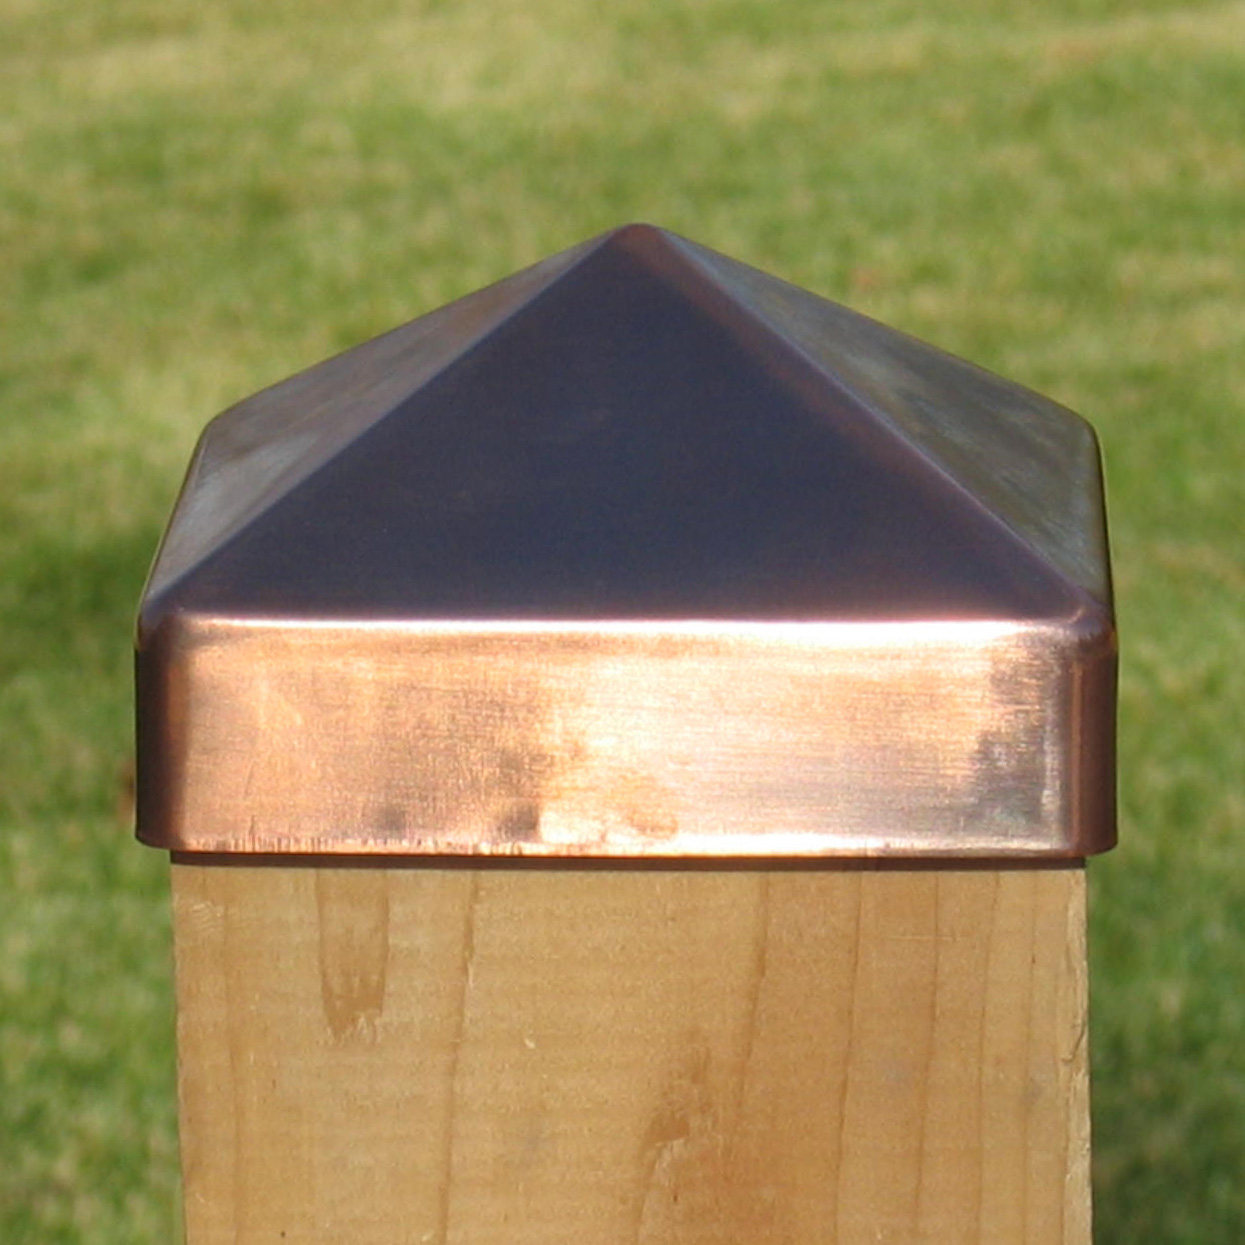 Fence Post Solar Light Caps 6x6 | Post Caps 6x6 | Decorative Fence Post Caps